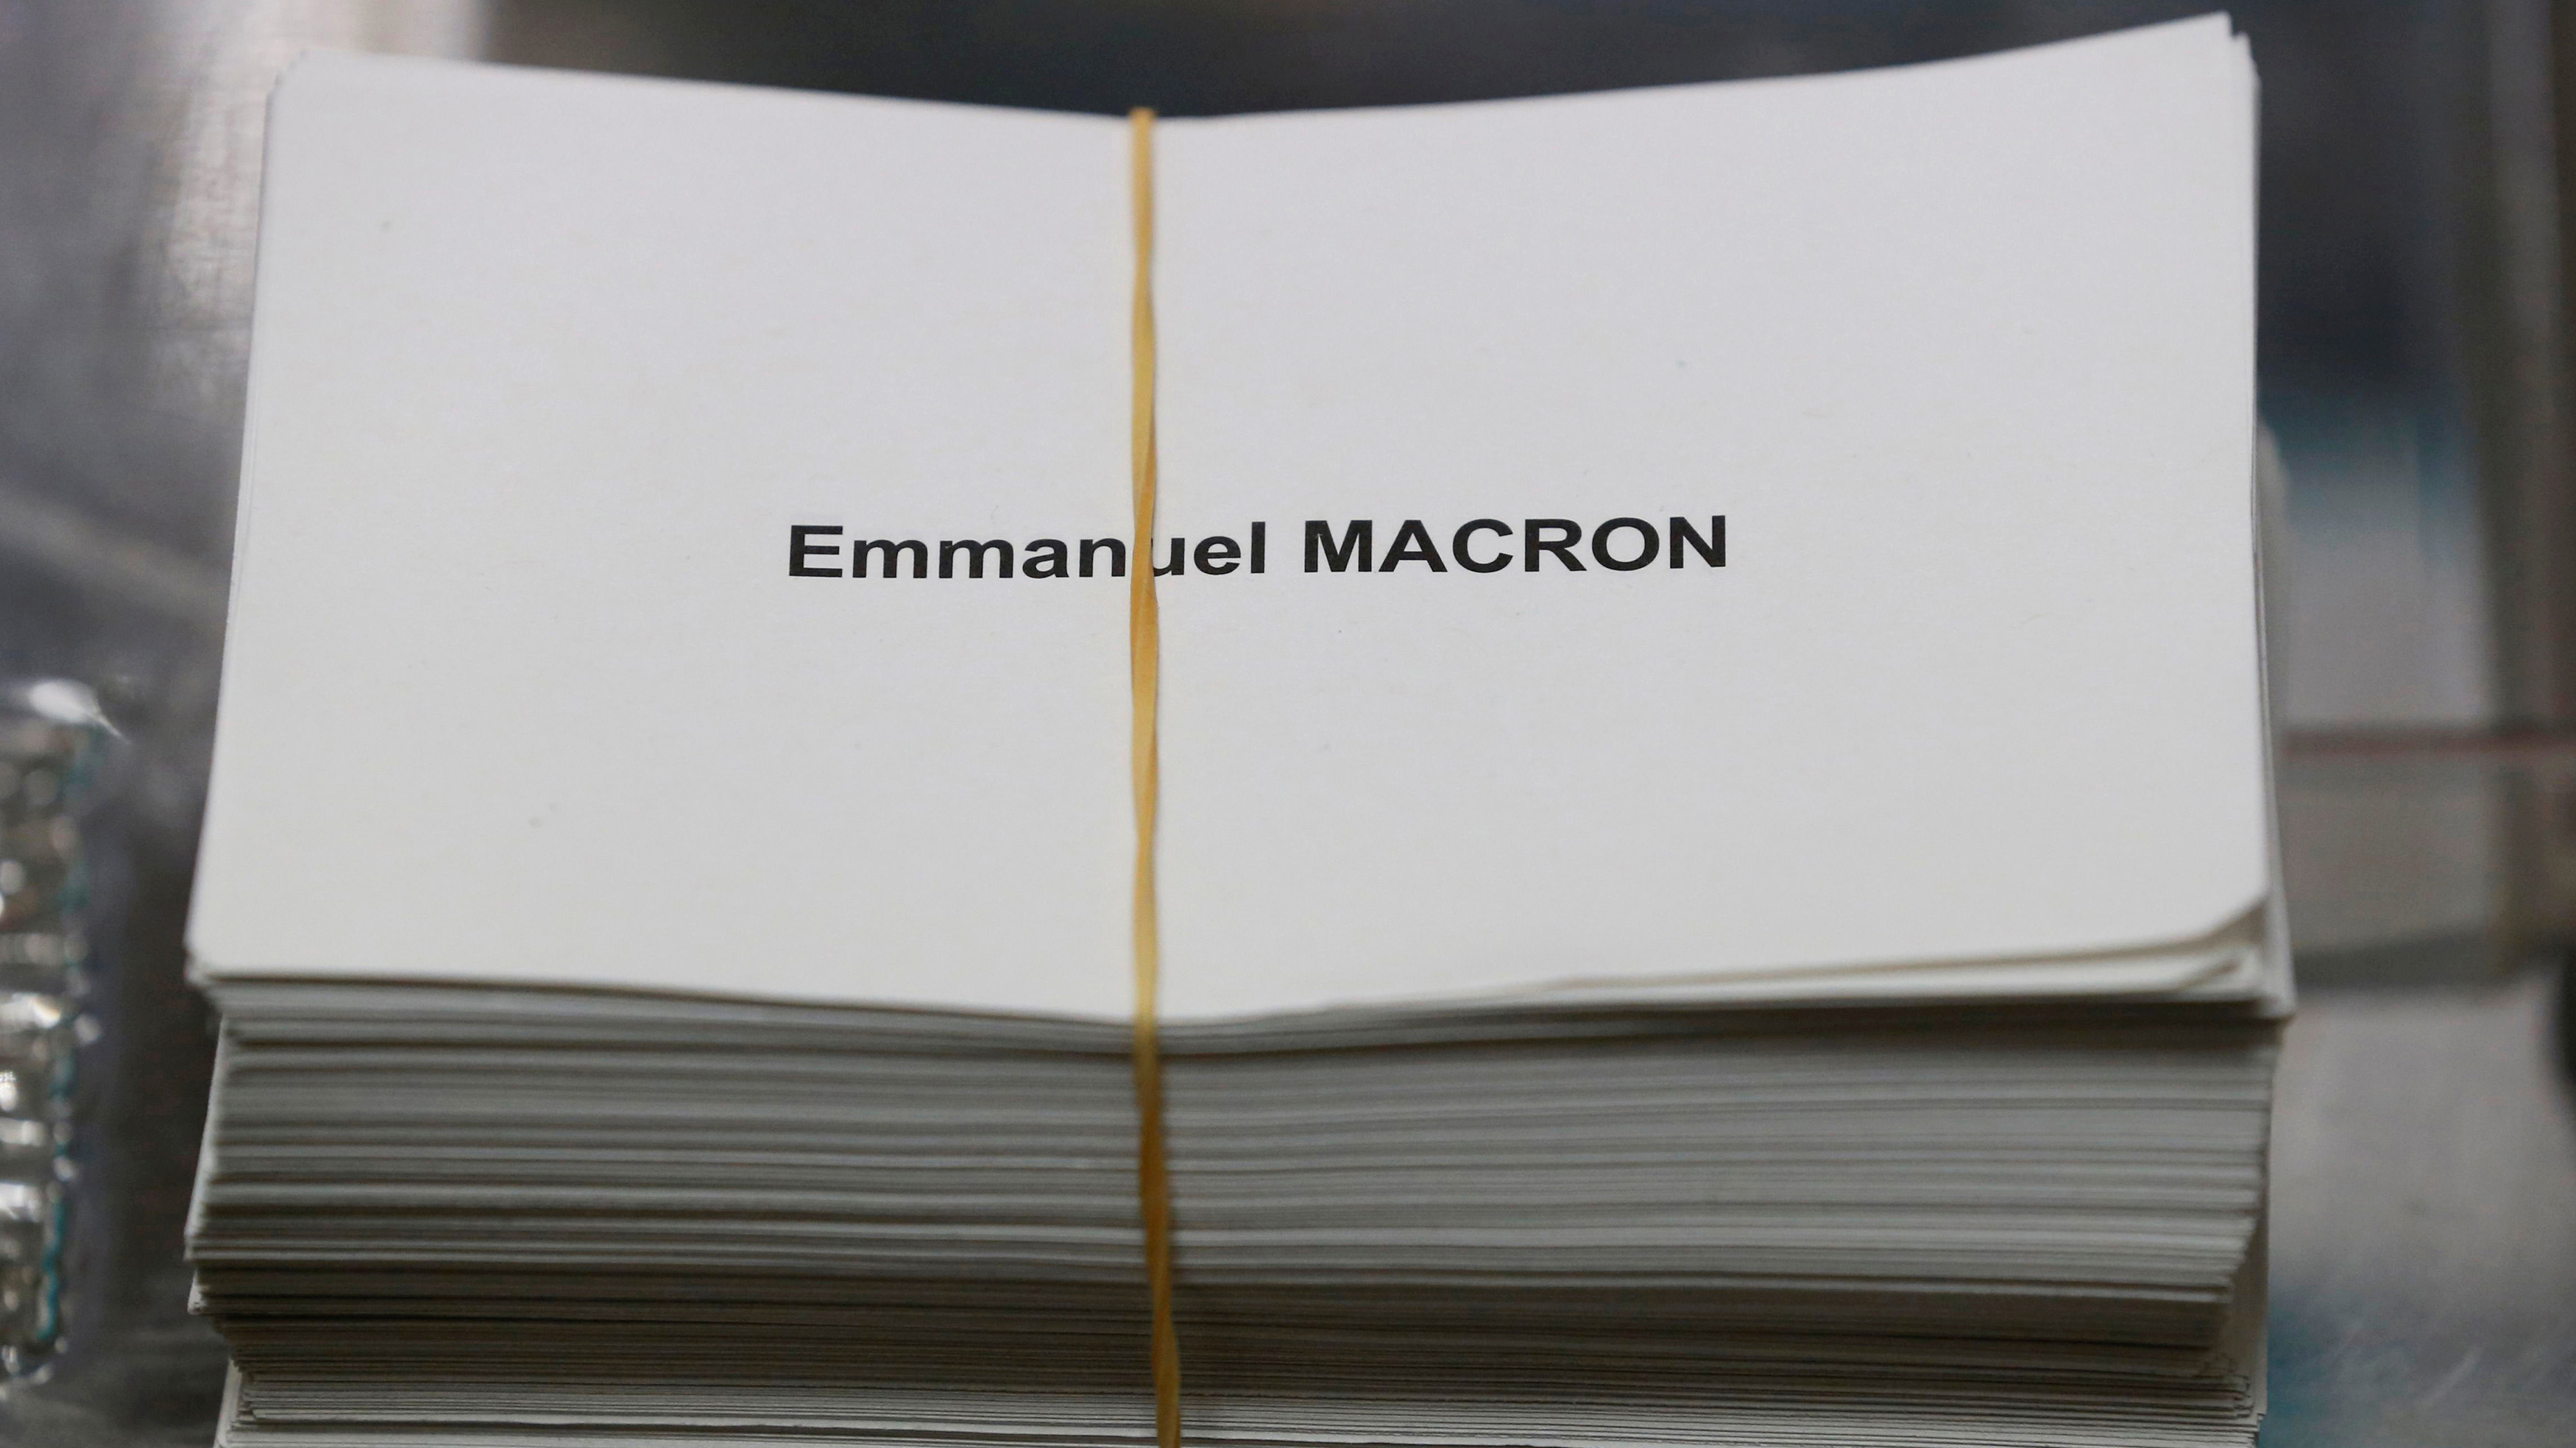 Ballots with the name of Emmanuel Macron, head of the political movement En Marche !, or Onwards !, and candidate for the 2017 presidential election, are seen on the eve of the second round of the French presidential election, at a polling station in Tulle, France, May 6, 2017. REUTERS/Regis Duvignau - RTS15EGC